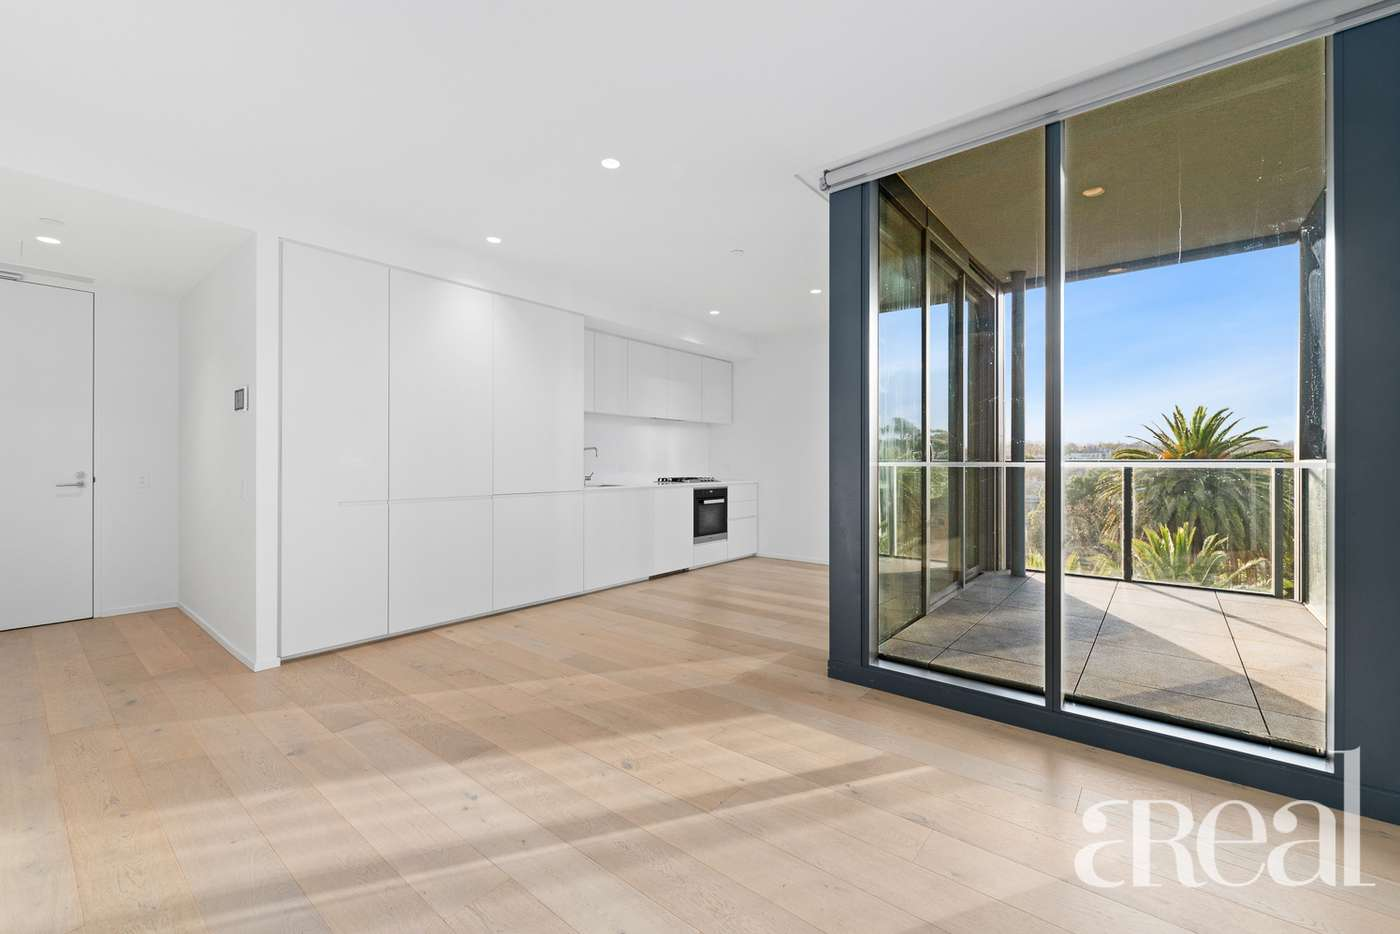 Main view of Homely apartment listing, 306/7 Evergreen Mews, Armadale VIC 3143